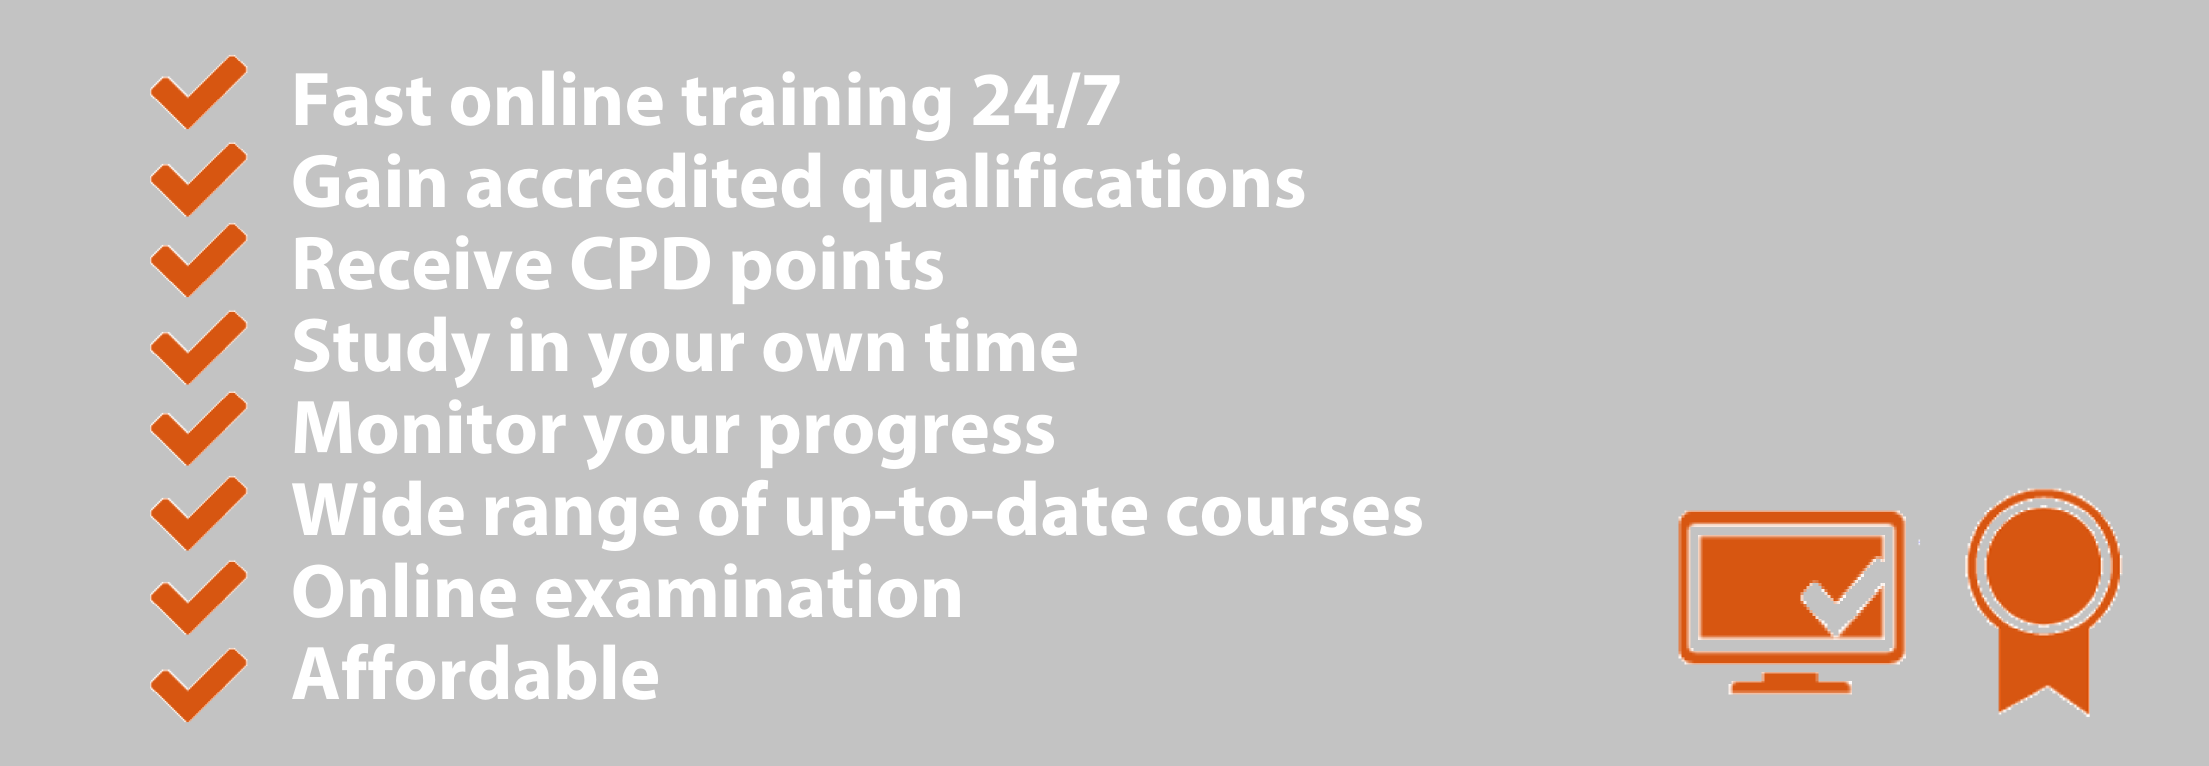 Here are just some of the benefits of becoming qualified with Whitehall Training